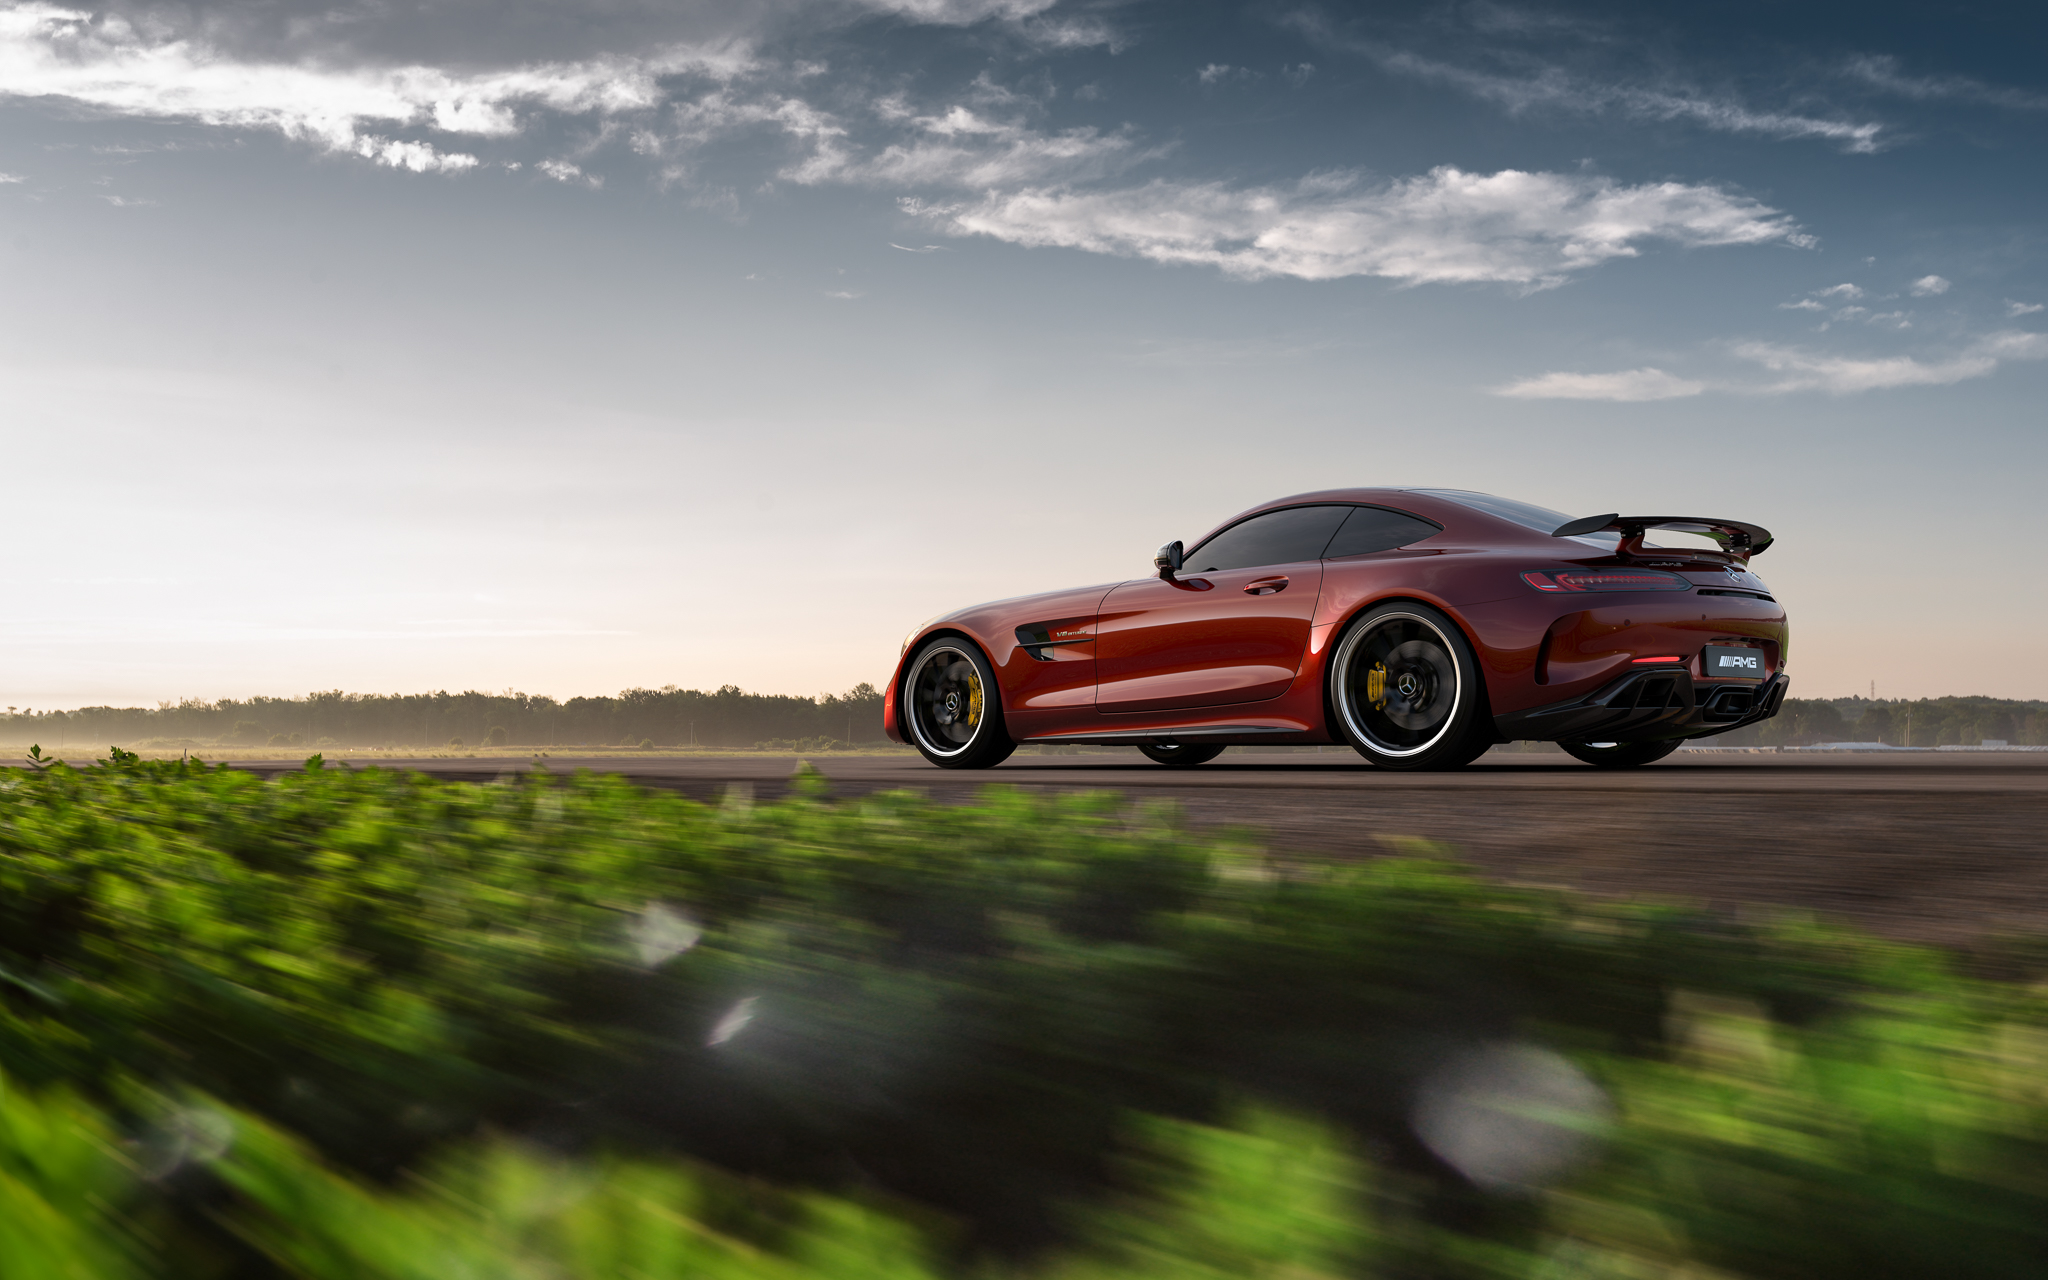 Mercedes Benz AMG GT R 2018 Rear, HD Cars, 4k Wallpapers ...